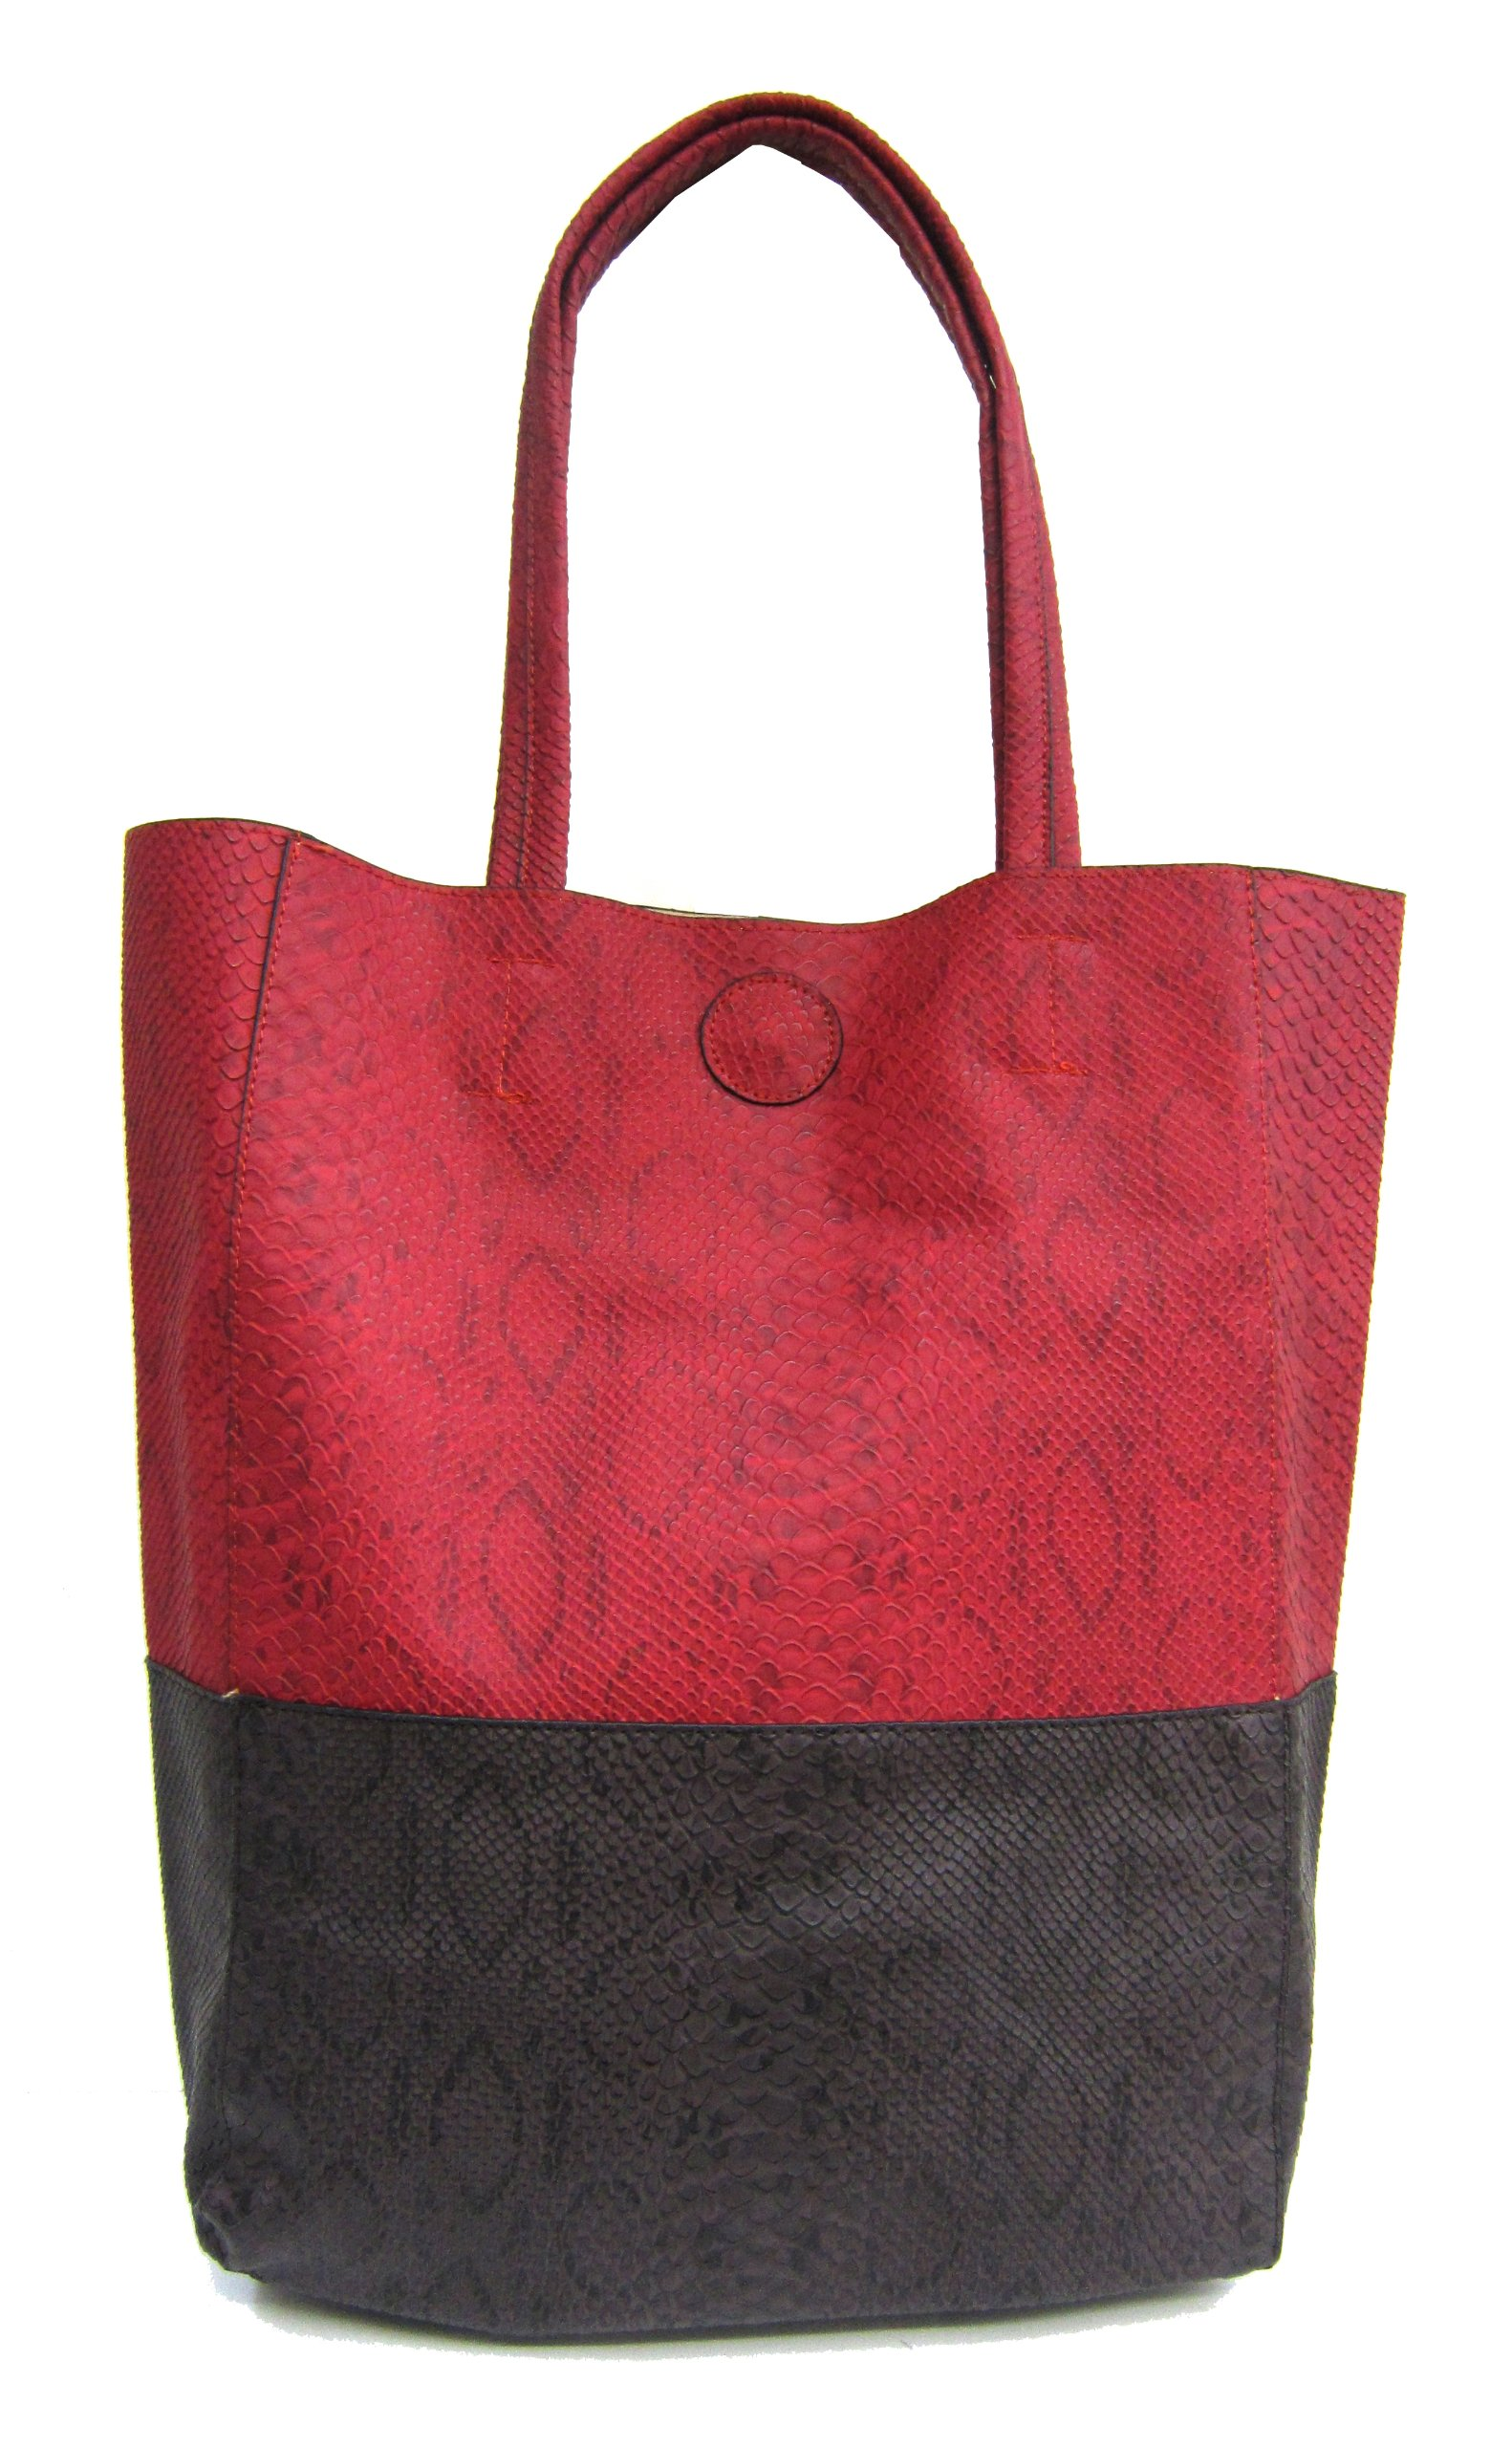 Snakeskin Tote Plus Cross-body EveryGirl Shoulder Bag Set (Red) by Moda Angelo